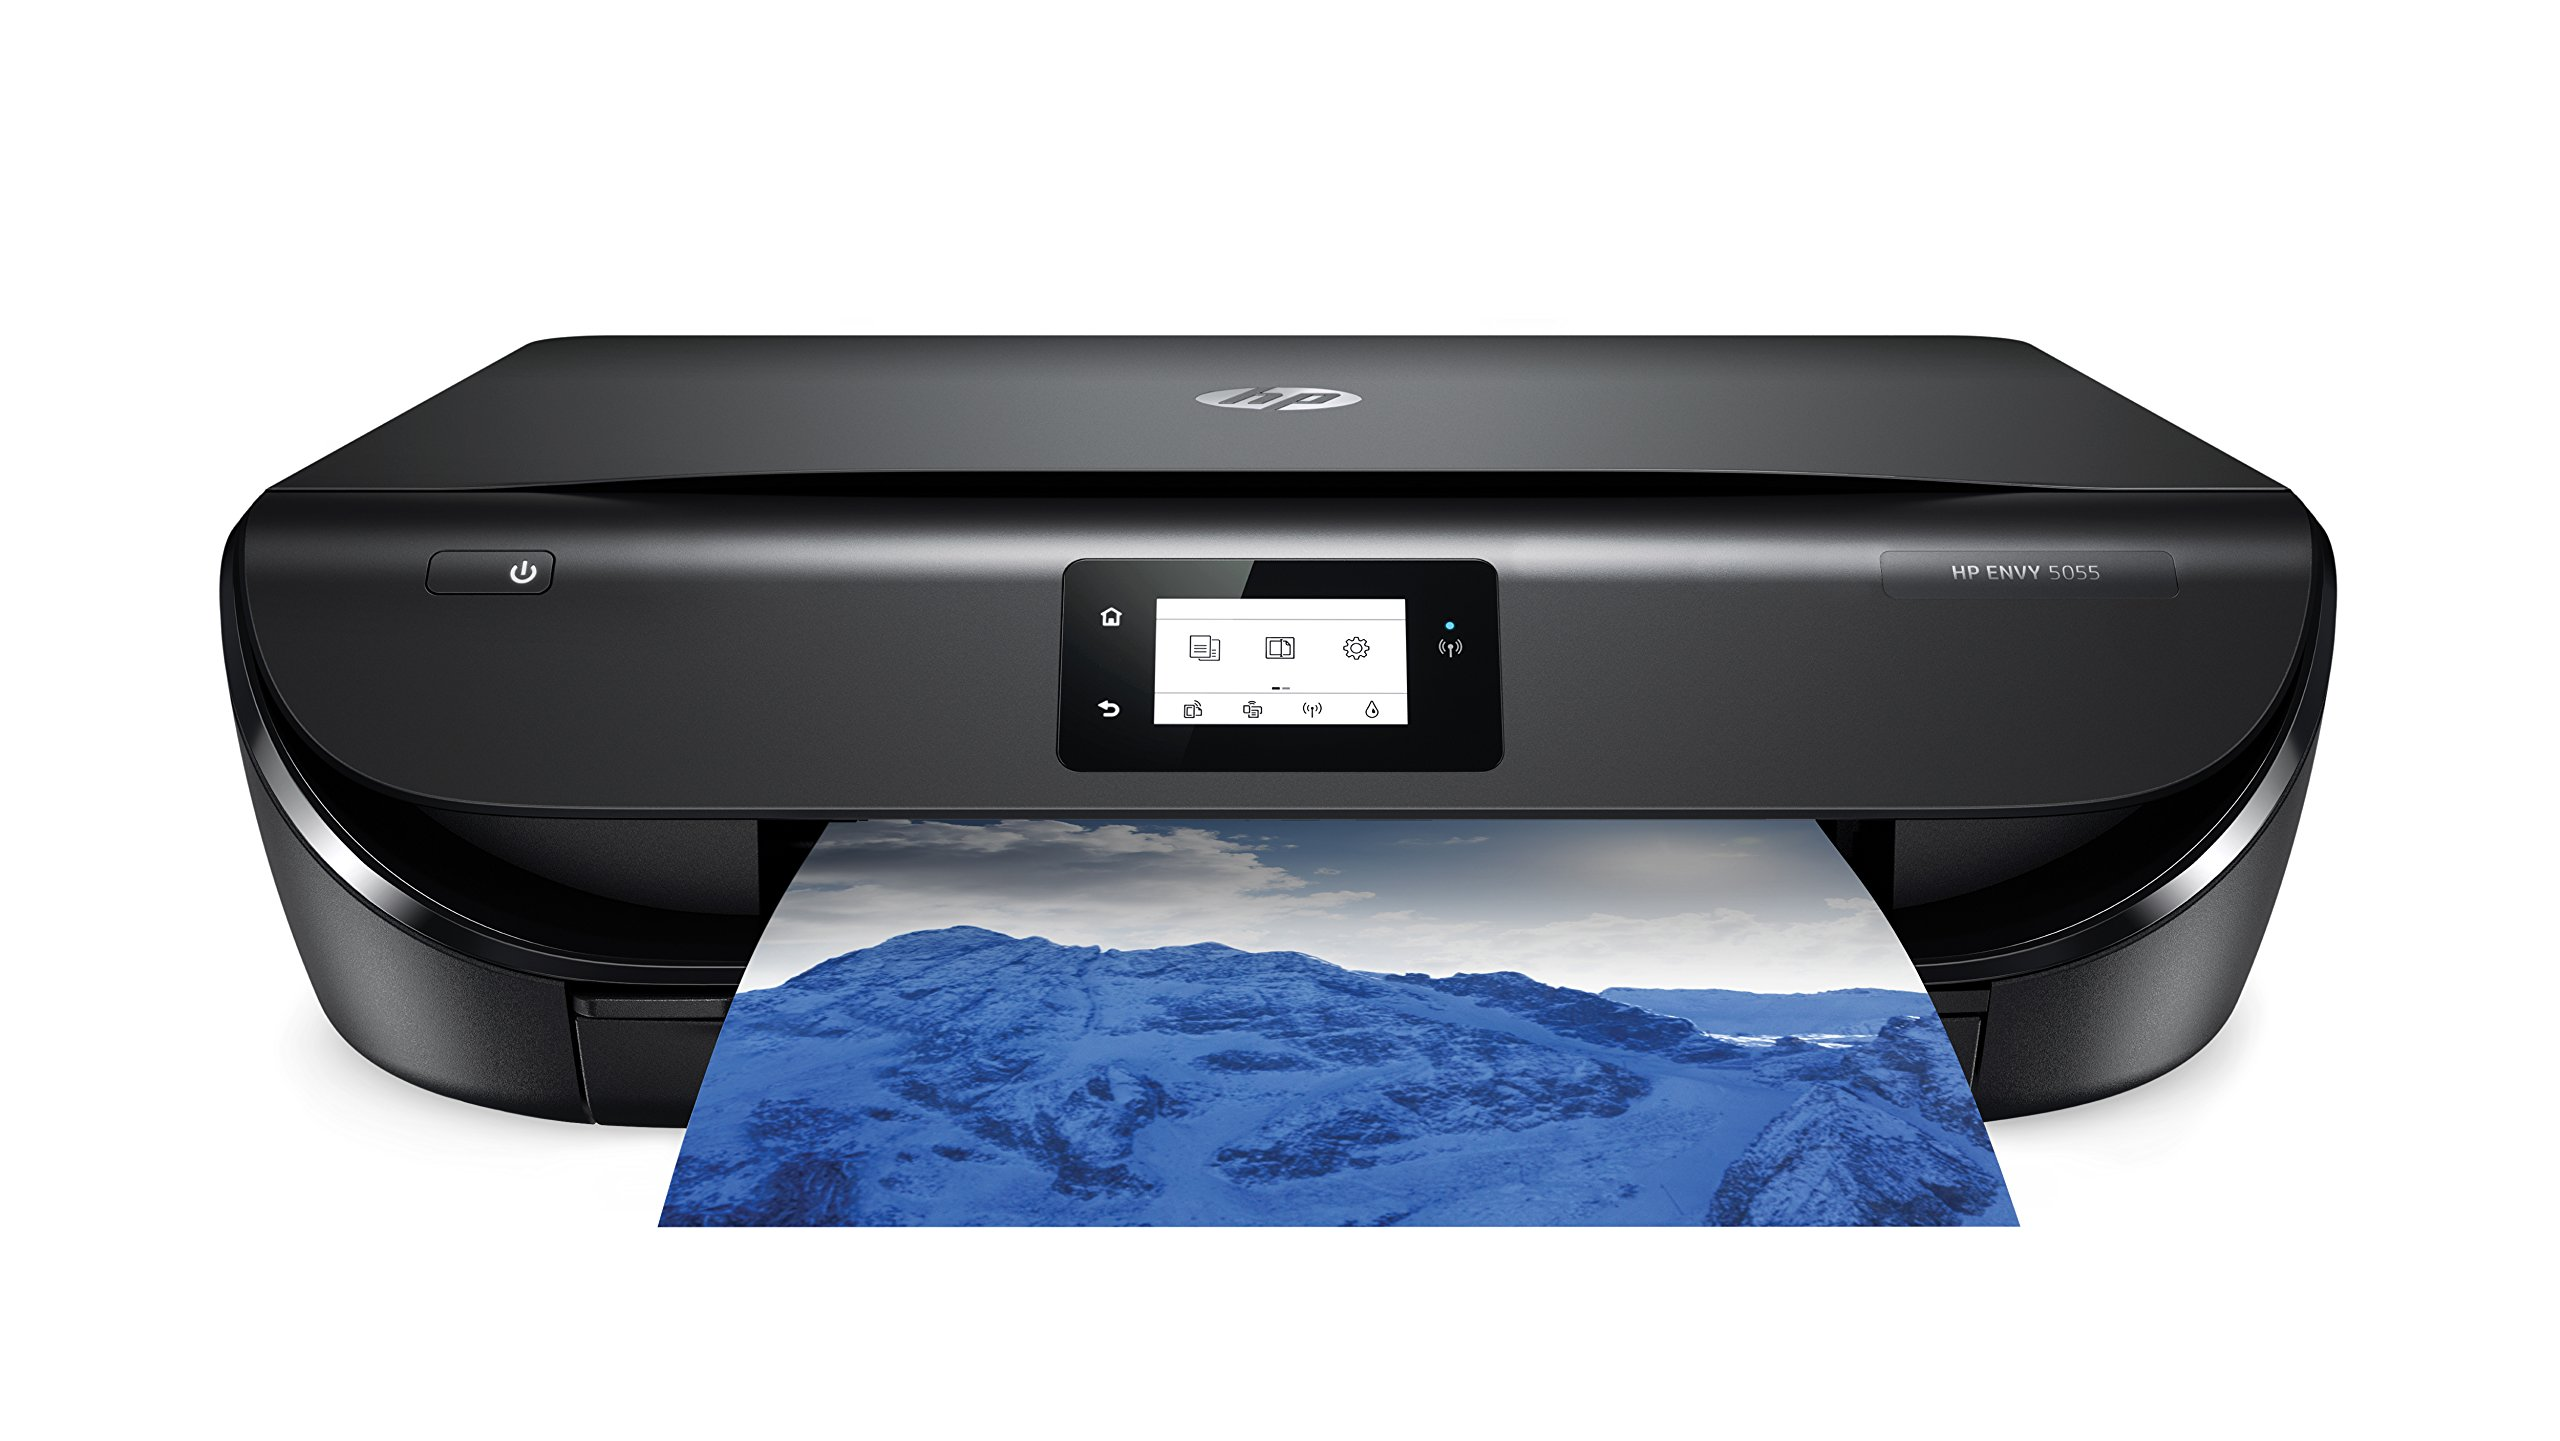 HP ENVY 5055 Wireless All-in-One Photo Printer, HP Instant Ink & Amazon Dash Replenishment ready (M2U85A) by HP